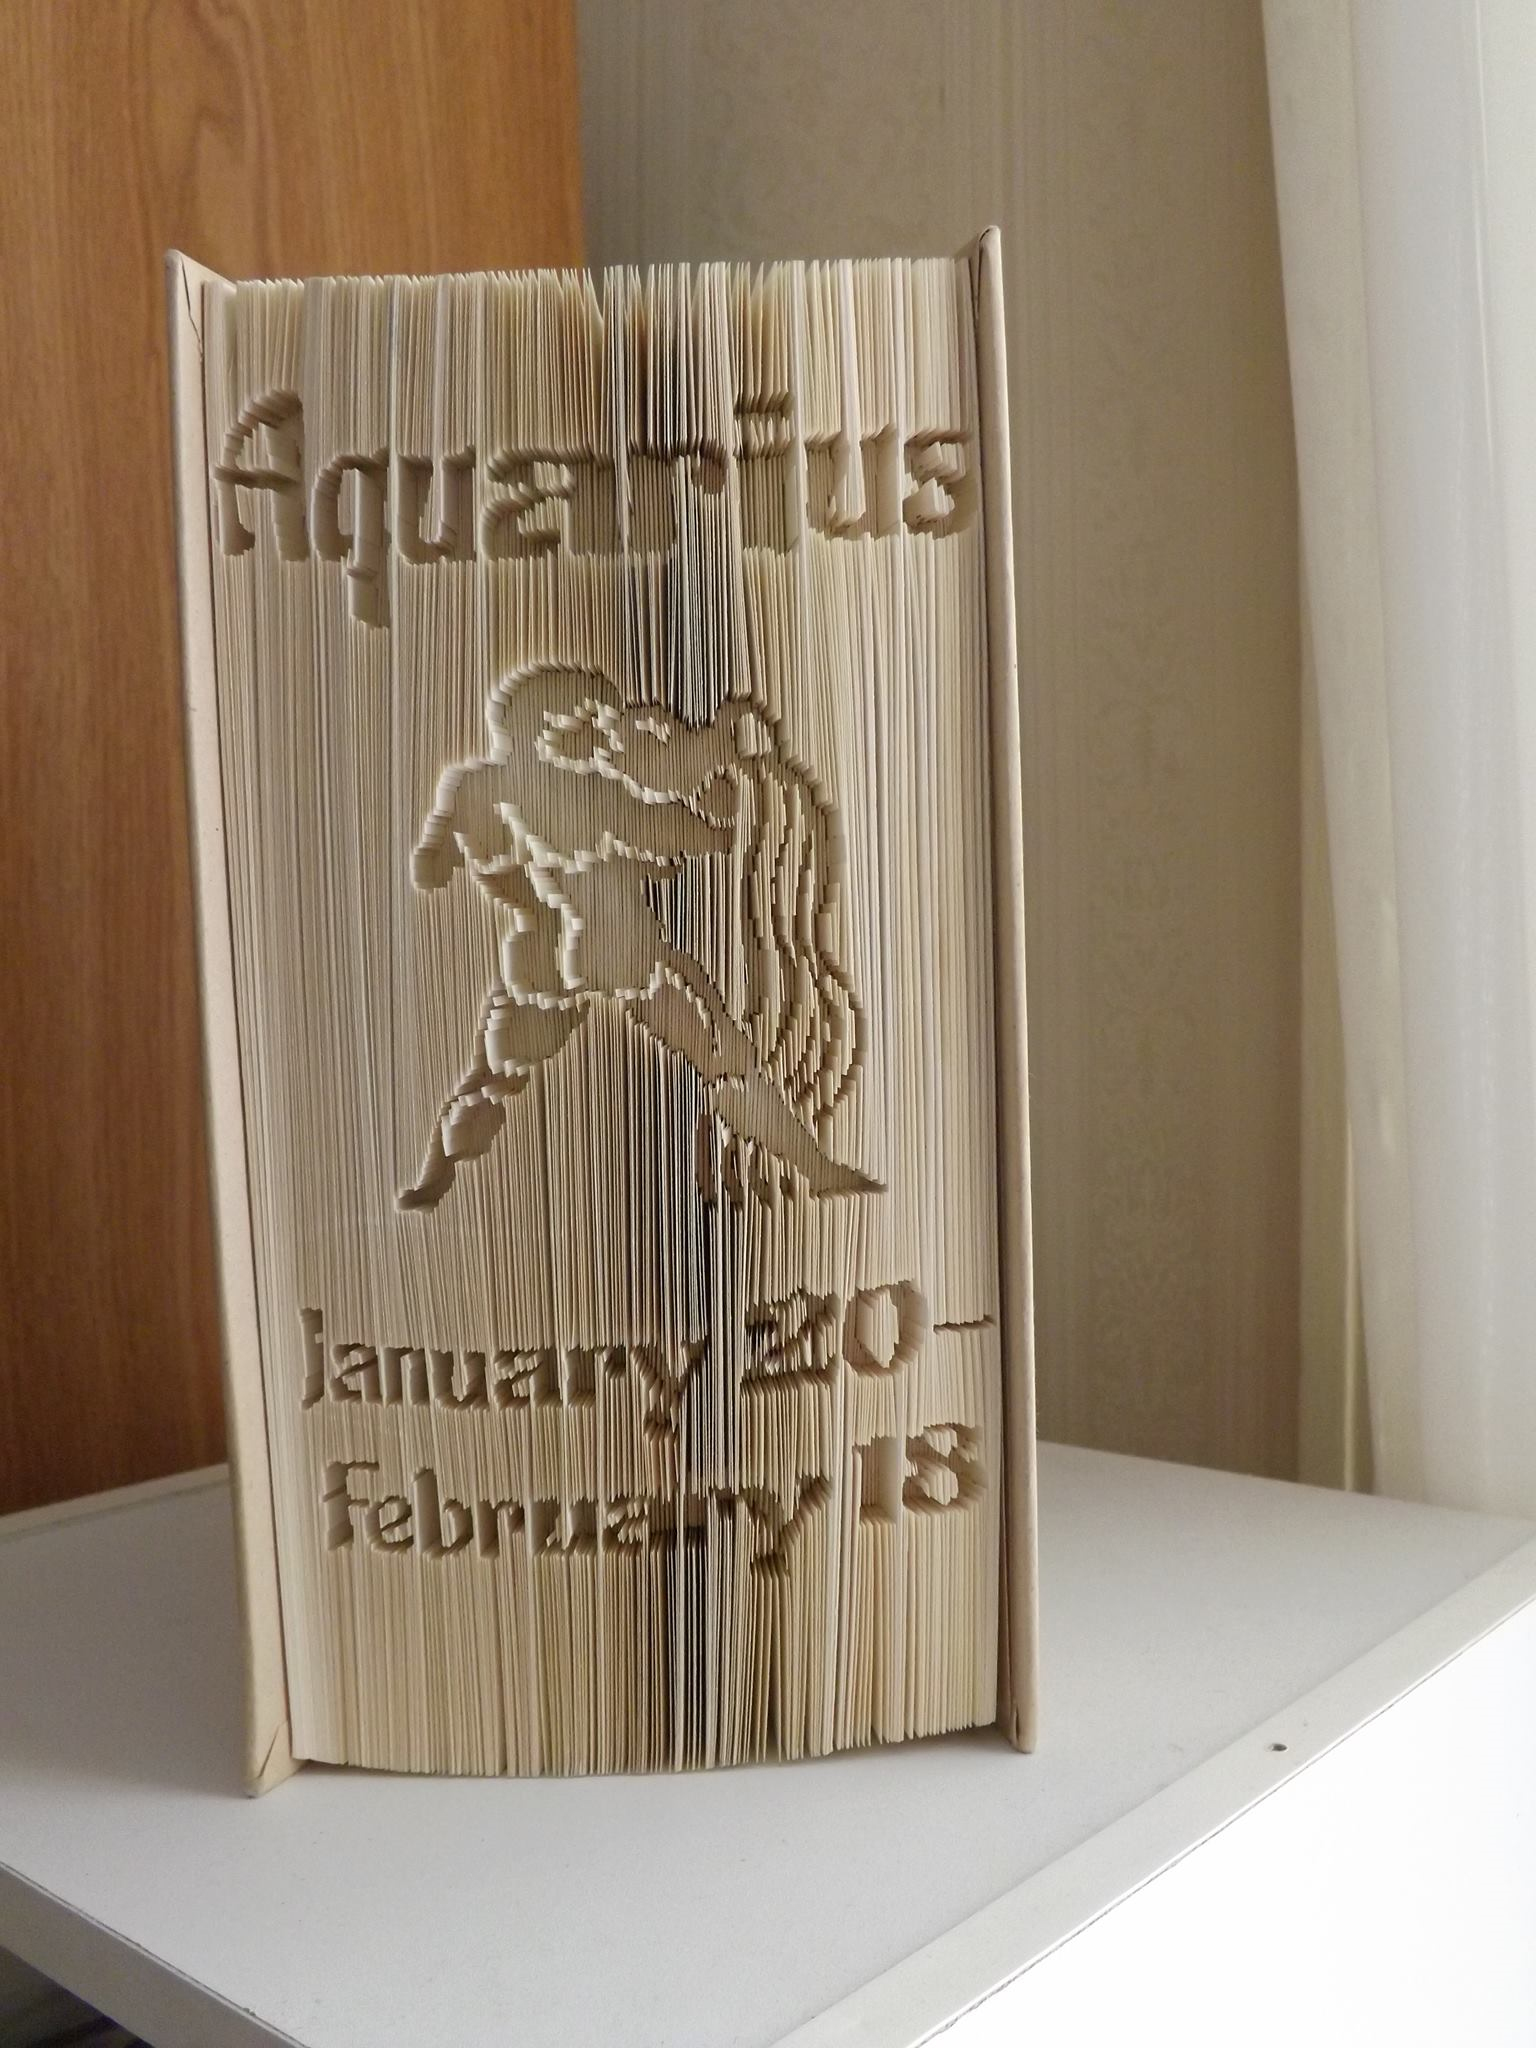 A great gift for a loved one born under the sign of Aquarius!